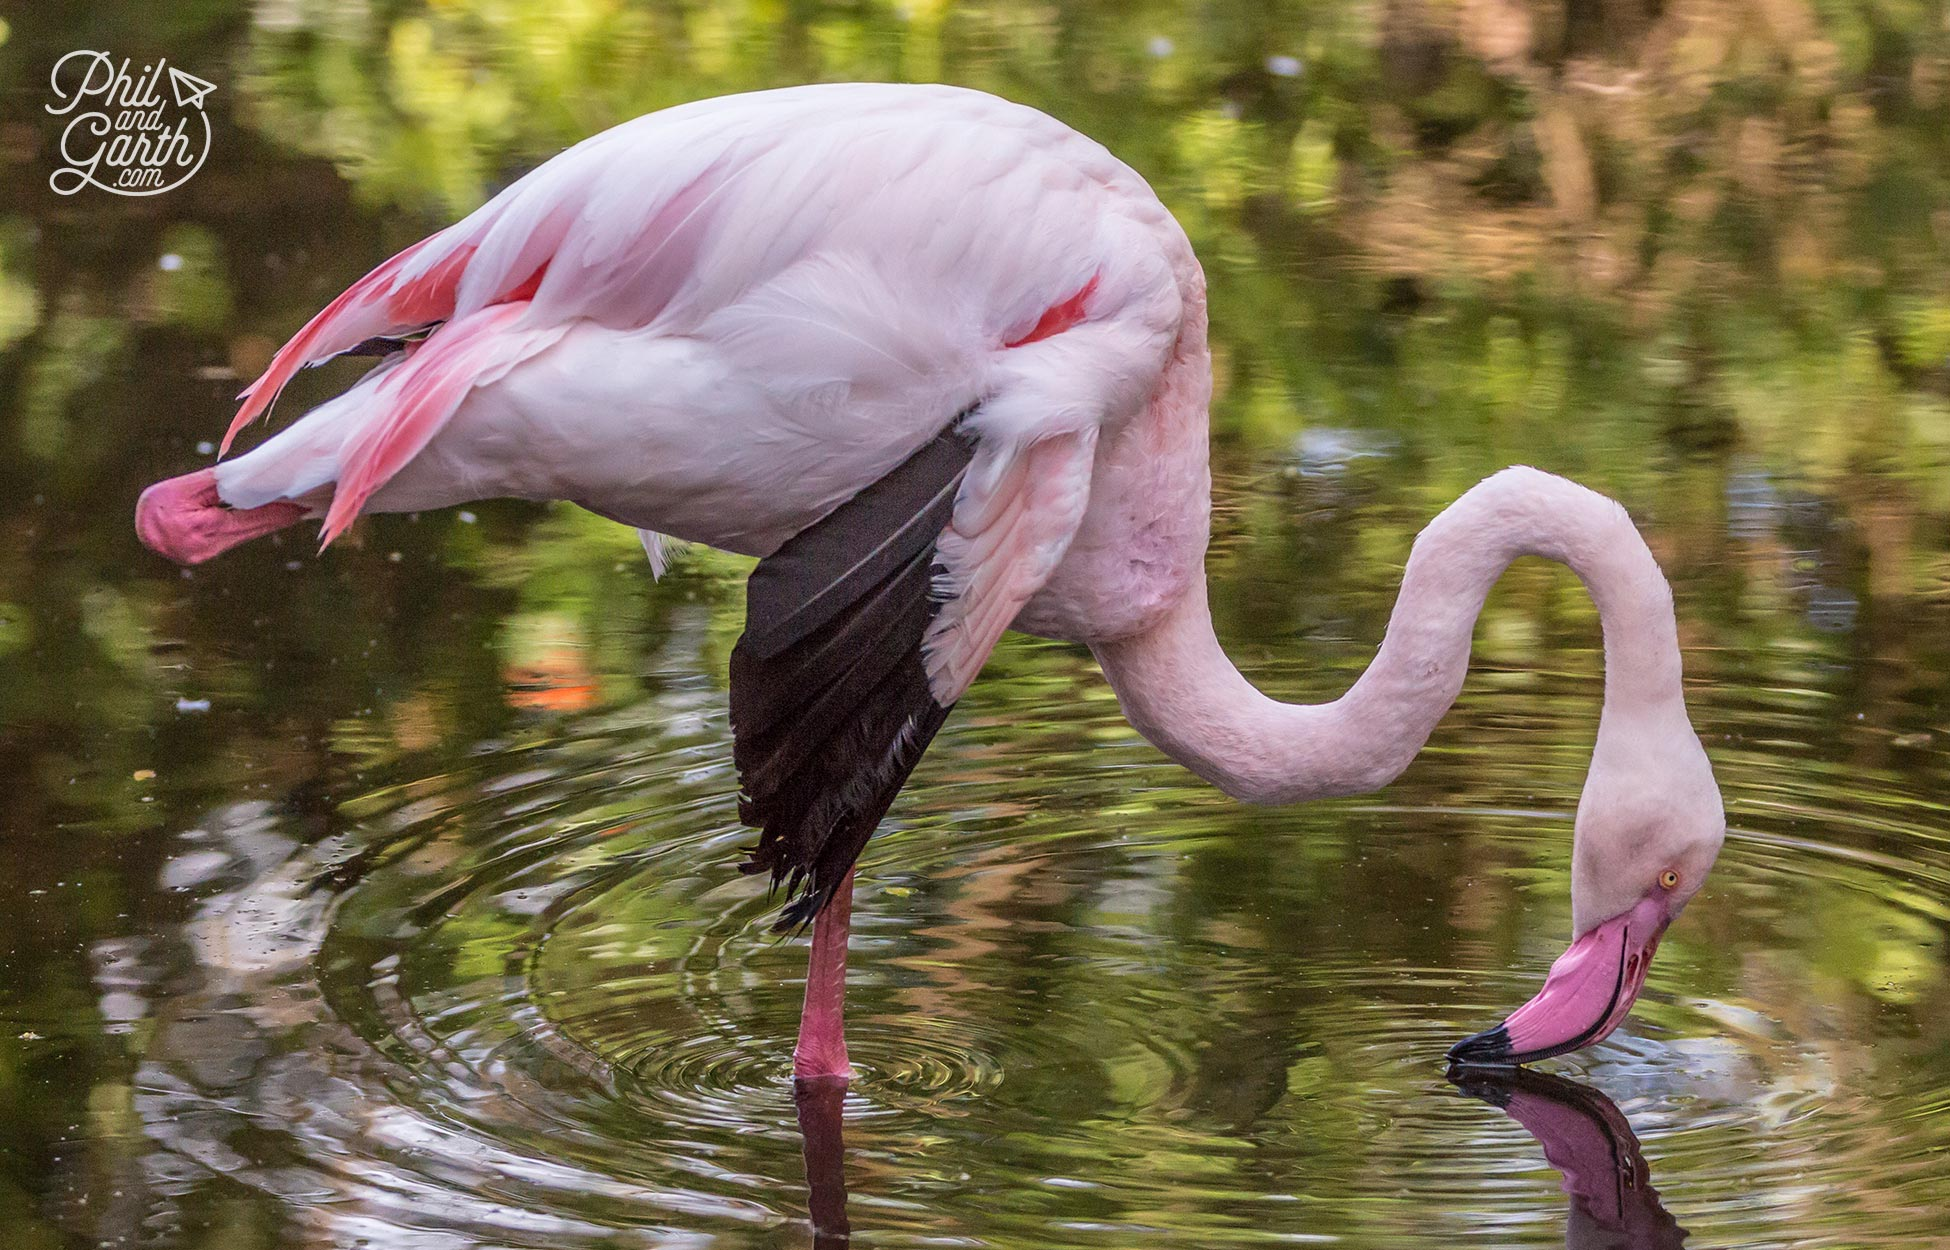 A pink flamingo takes a drink